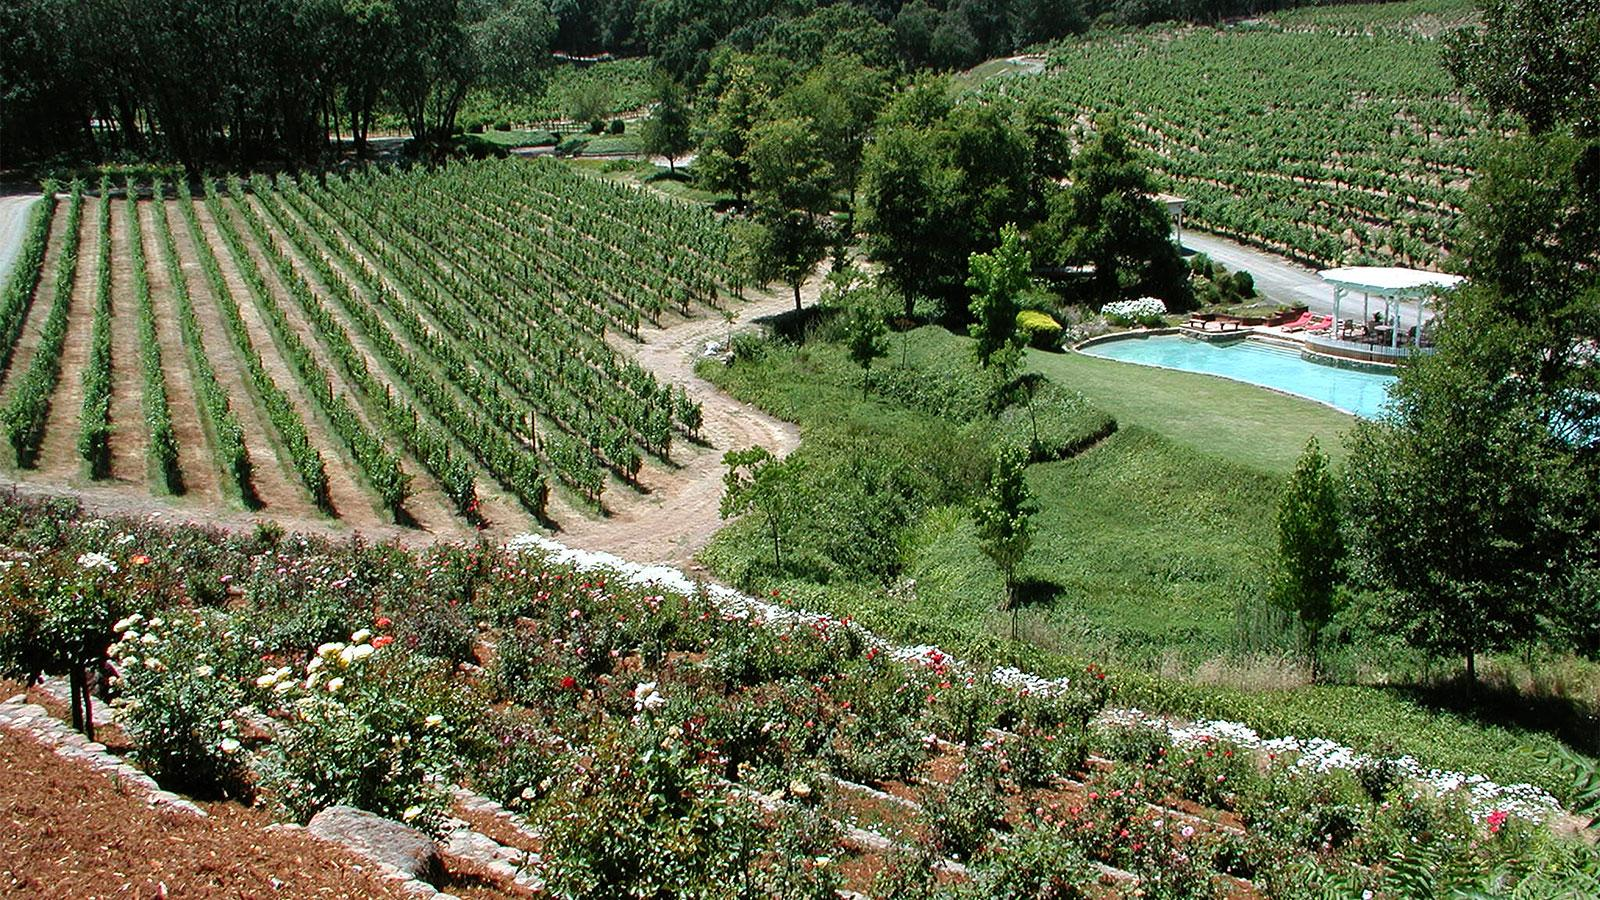 Roederer Champagne Owners Buy Napa's Diamond Creek